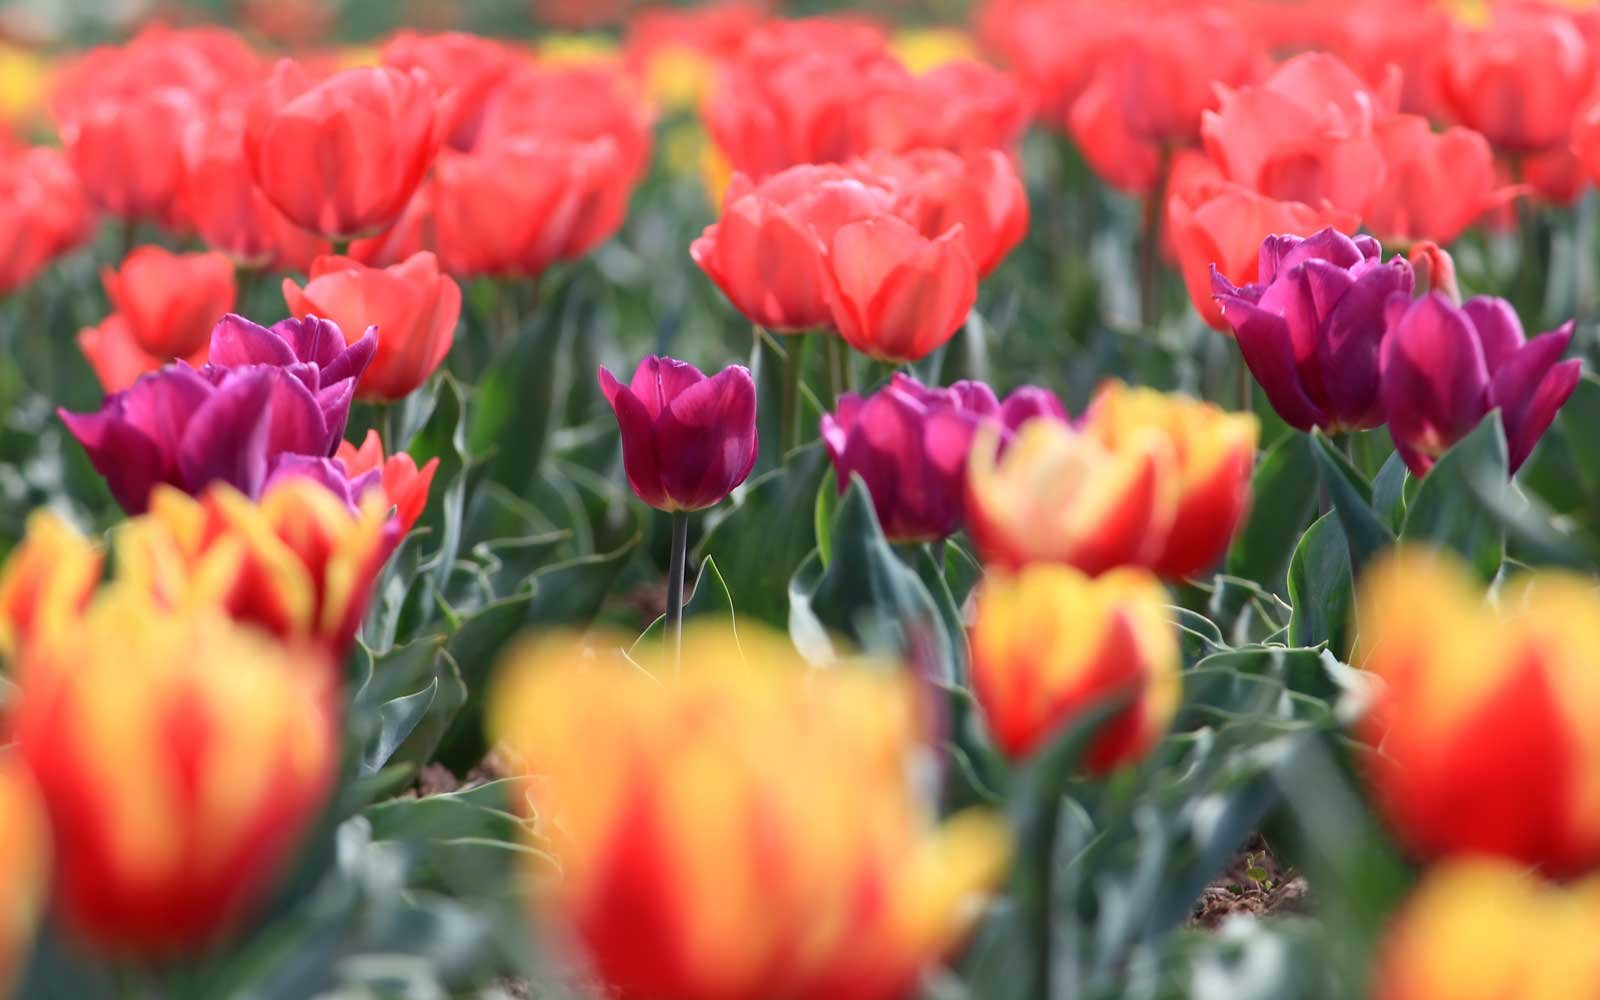 The Tulip Festival in Kashmir celebrates the blooming season